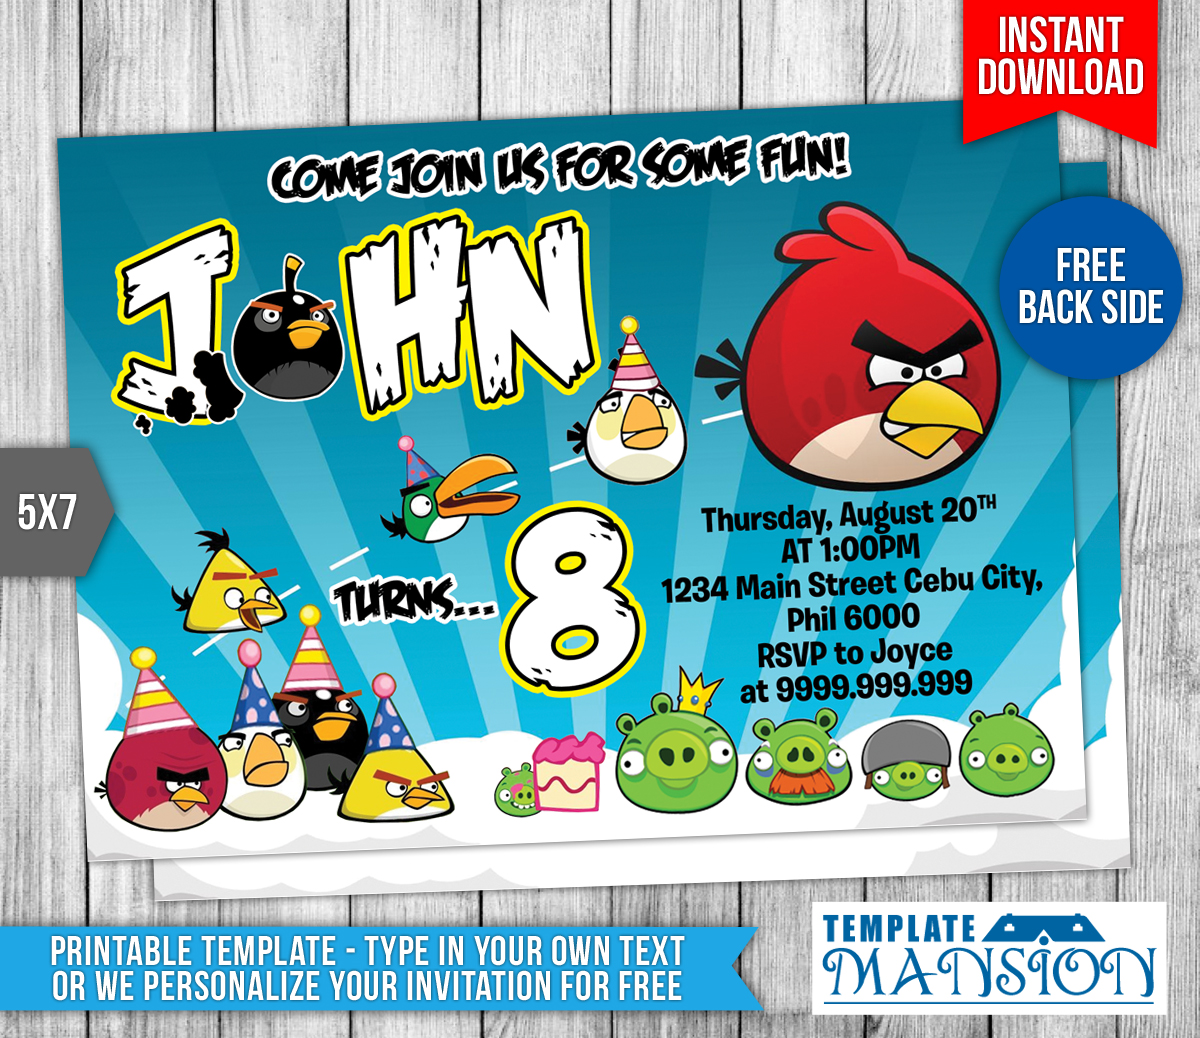 Angry Birds Birthday Invitation 2 By Templatemansion On DeviantArt